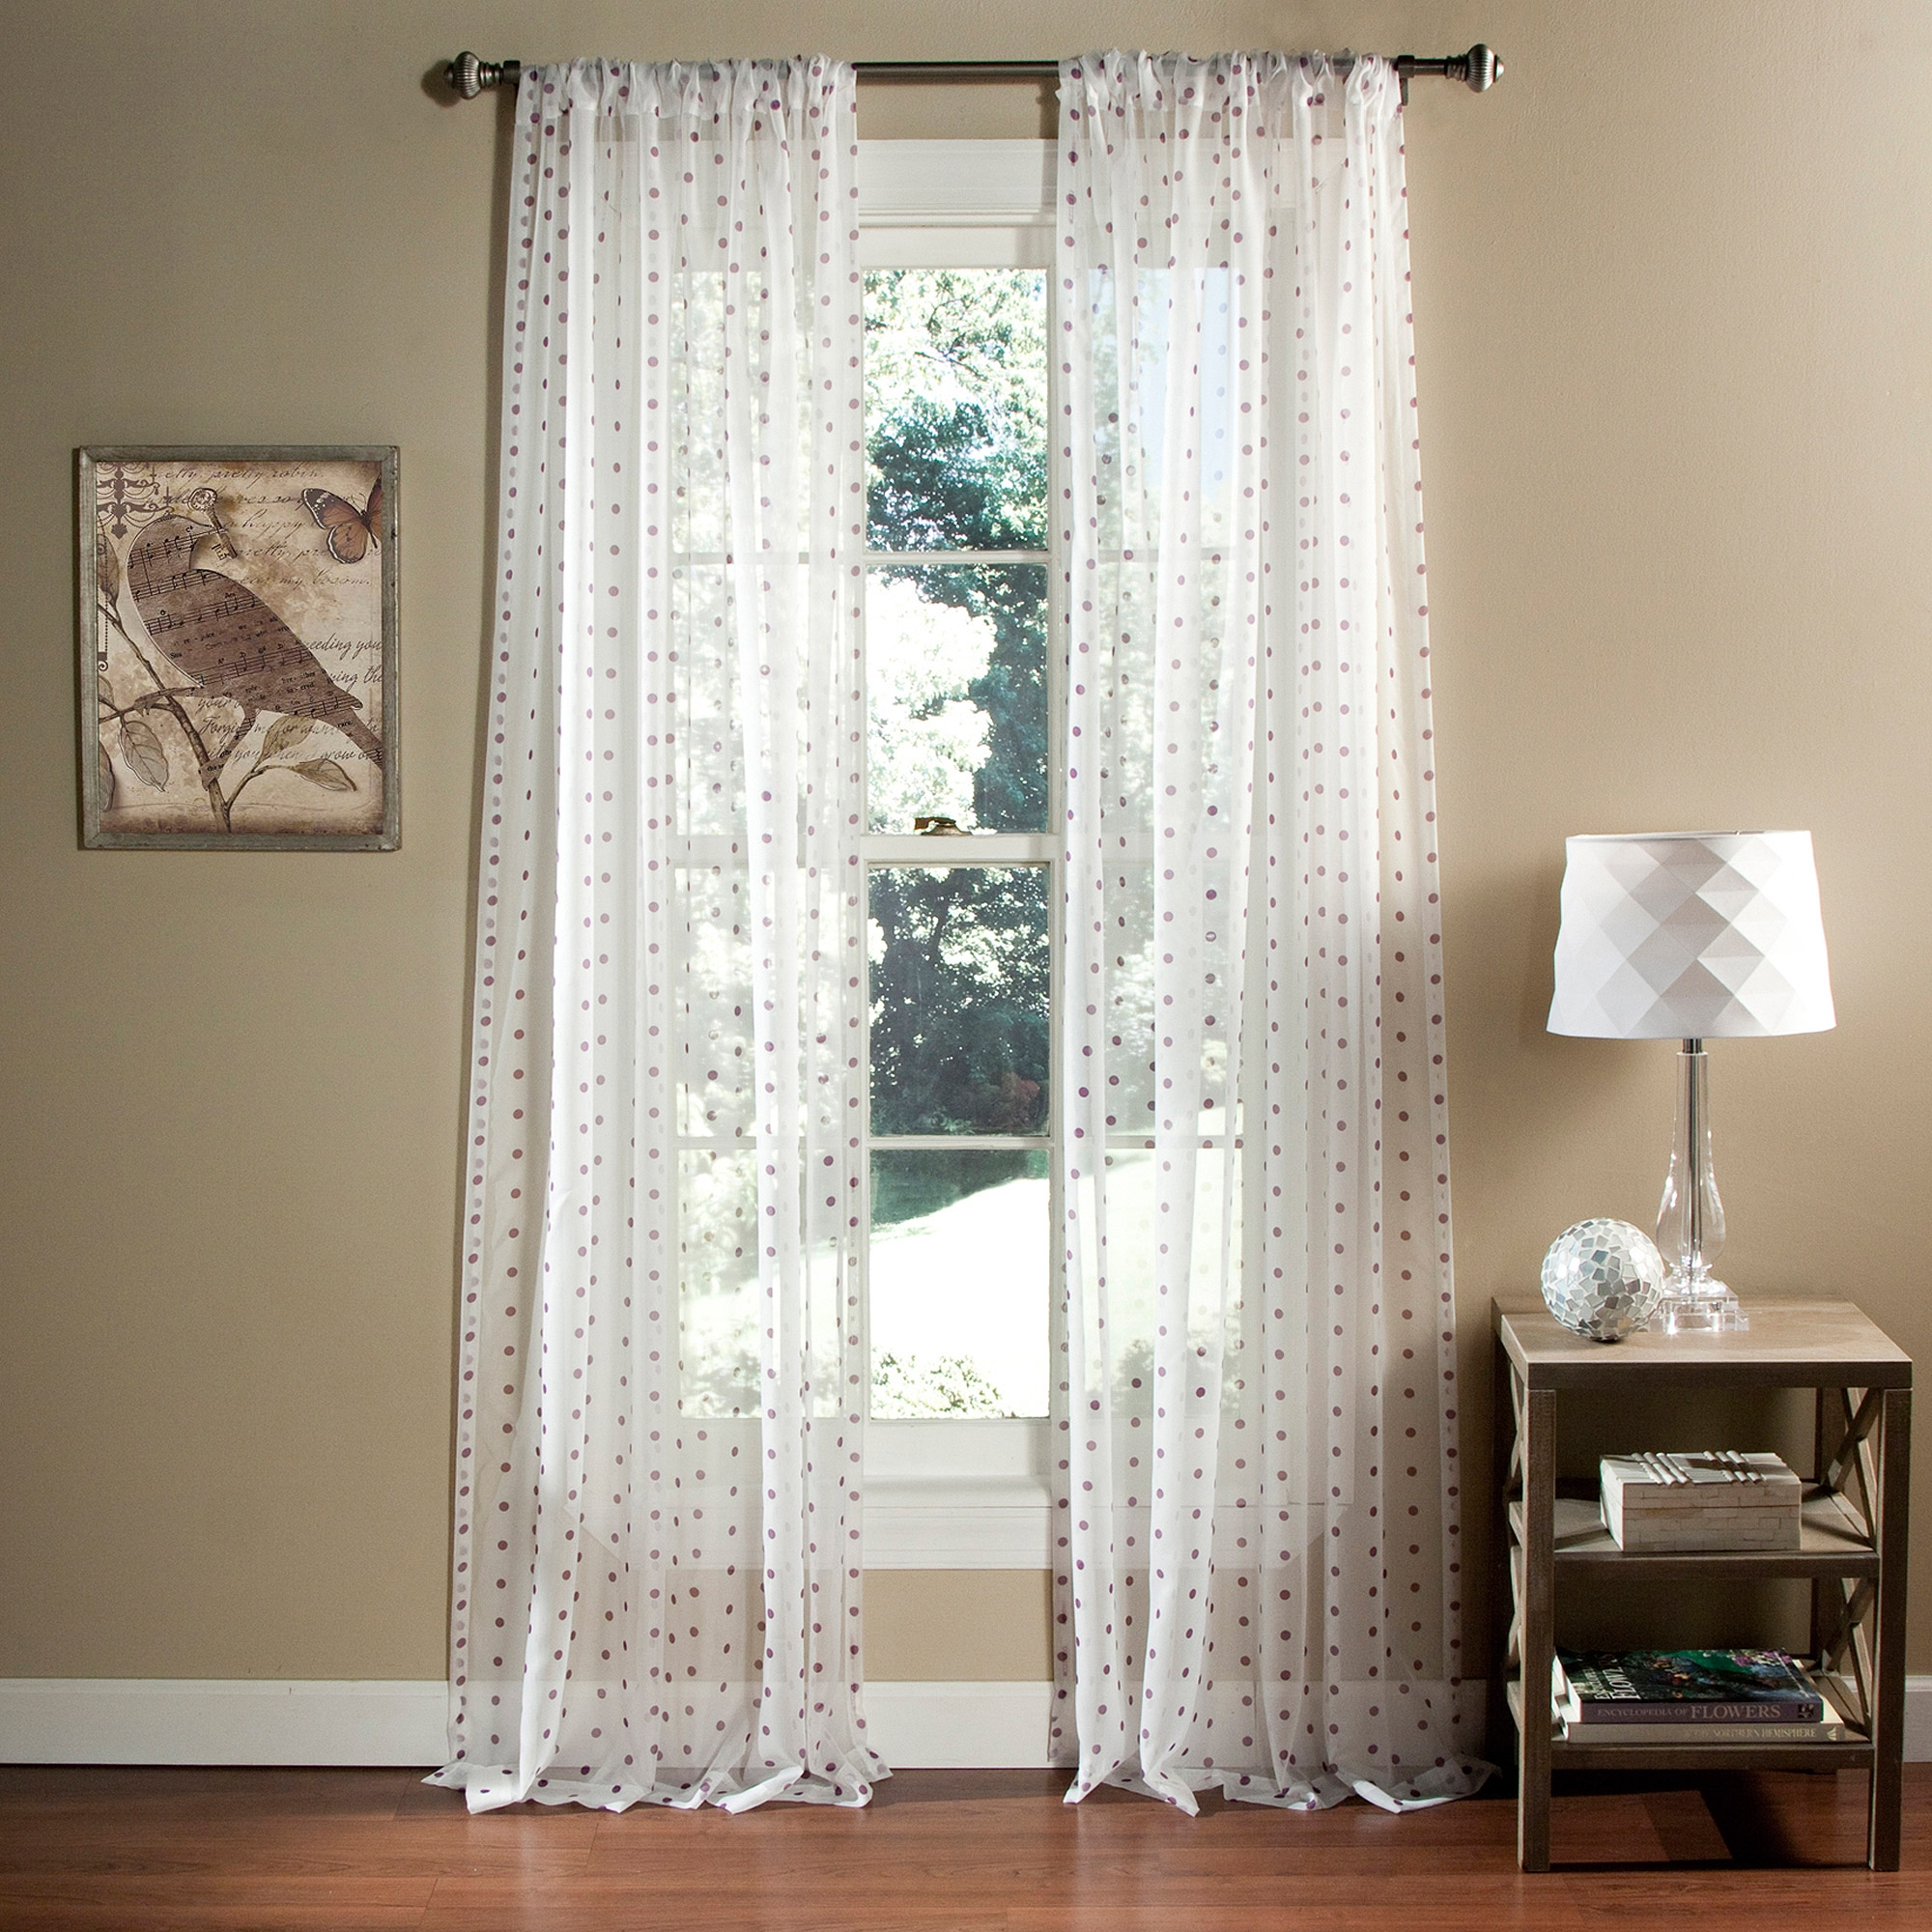 Interior Marvellous Curtain Sheers With Cute Color For Window Intended For Sheer White Curtain Panels (Image 11 of 25)